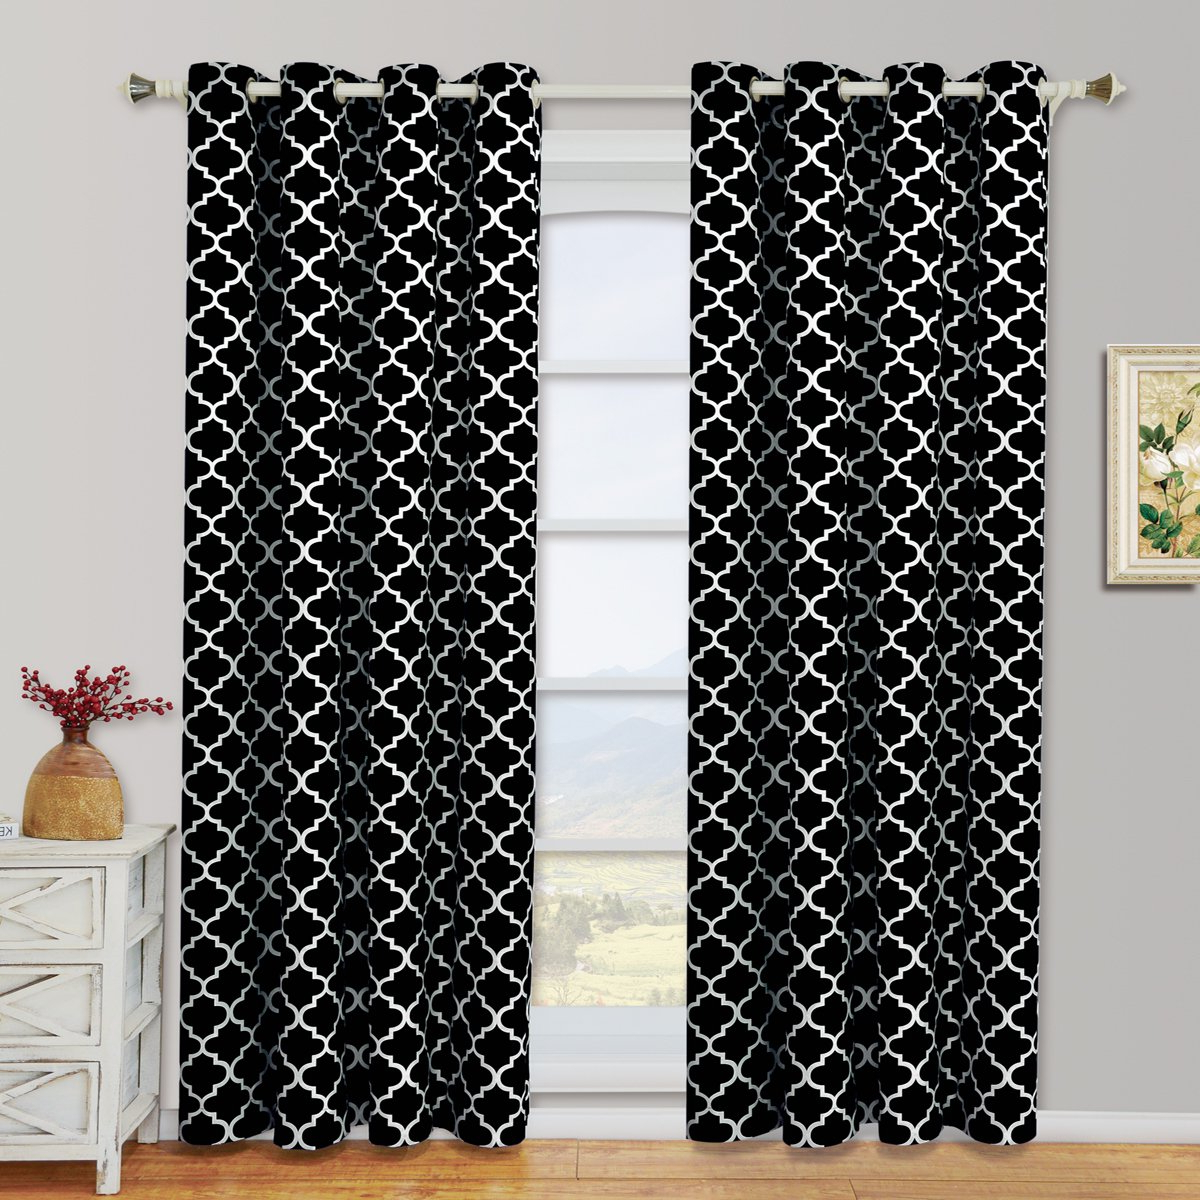 Widely Used Black & White Curtains Seasonal Sale – Ease Bedding With Style With Regard To Edward Moroccan Pattern Room Darkening Curtain Panel Pairs (View 20 of 20)